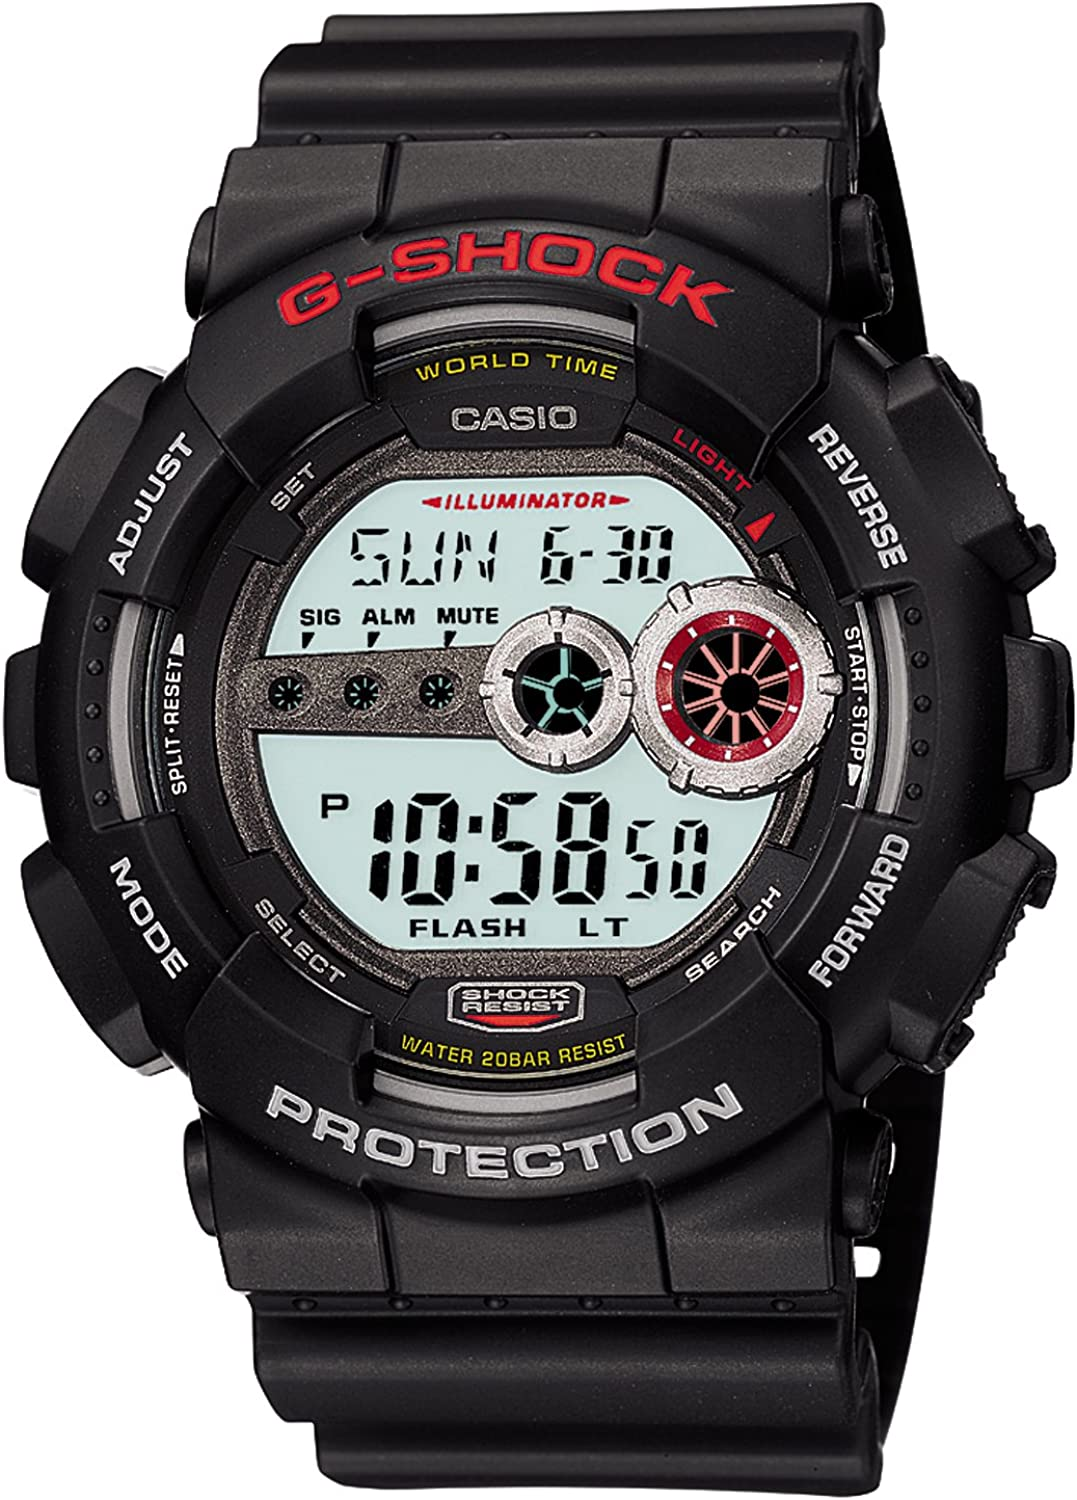 CASIO G-Shock Watch GD-100-1AJF Japan Import